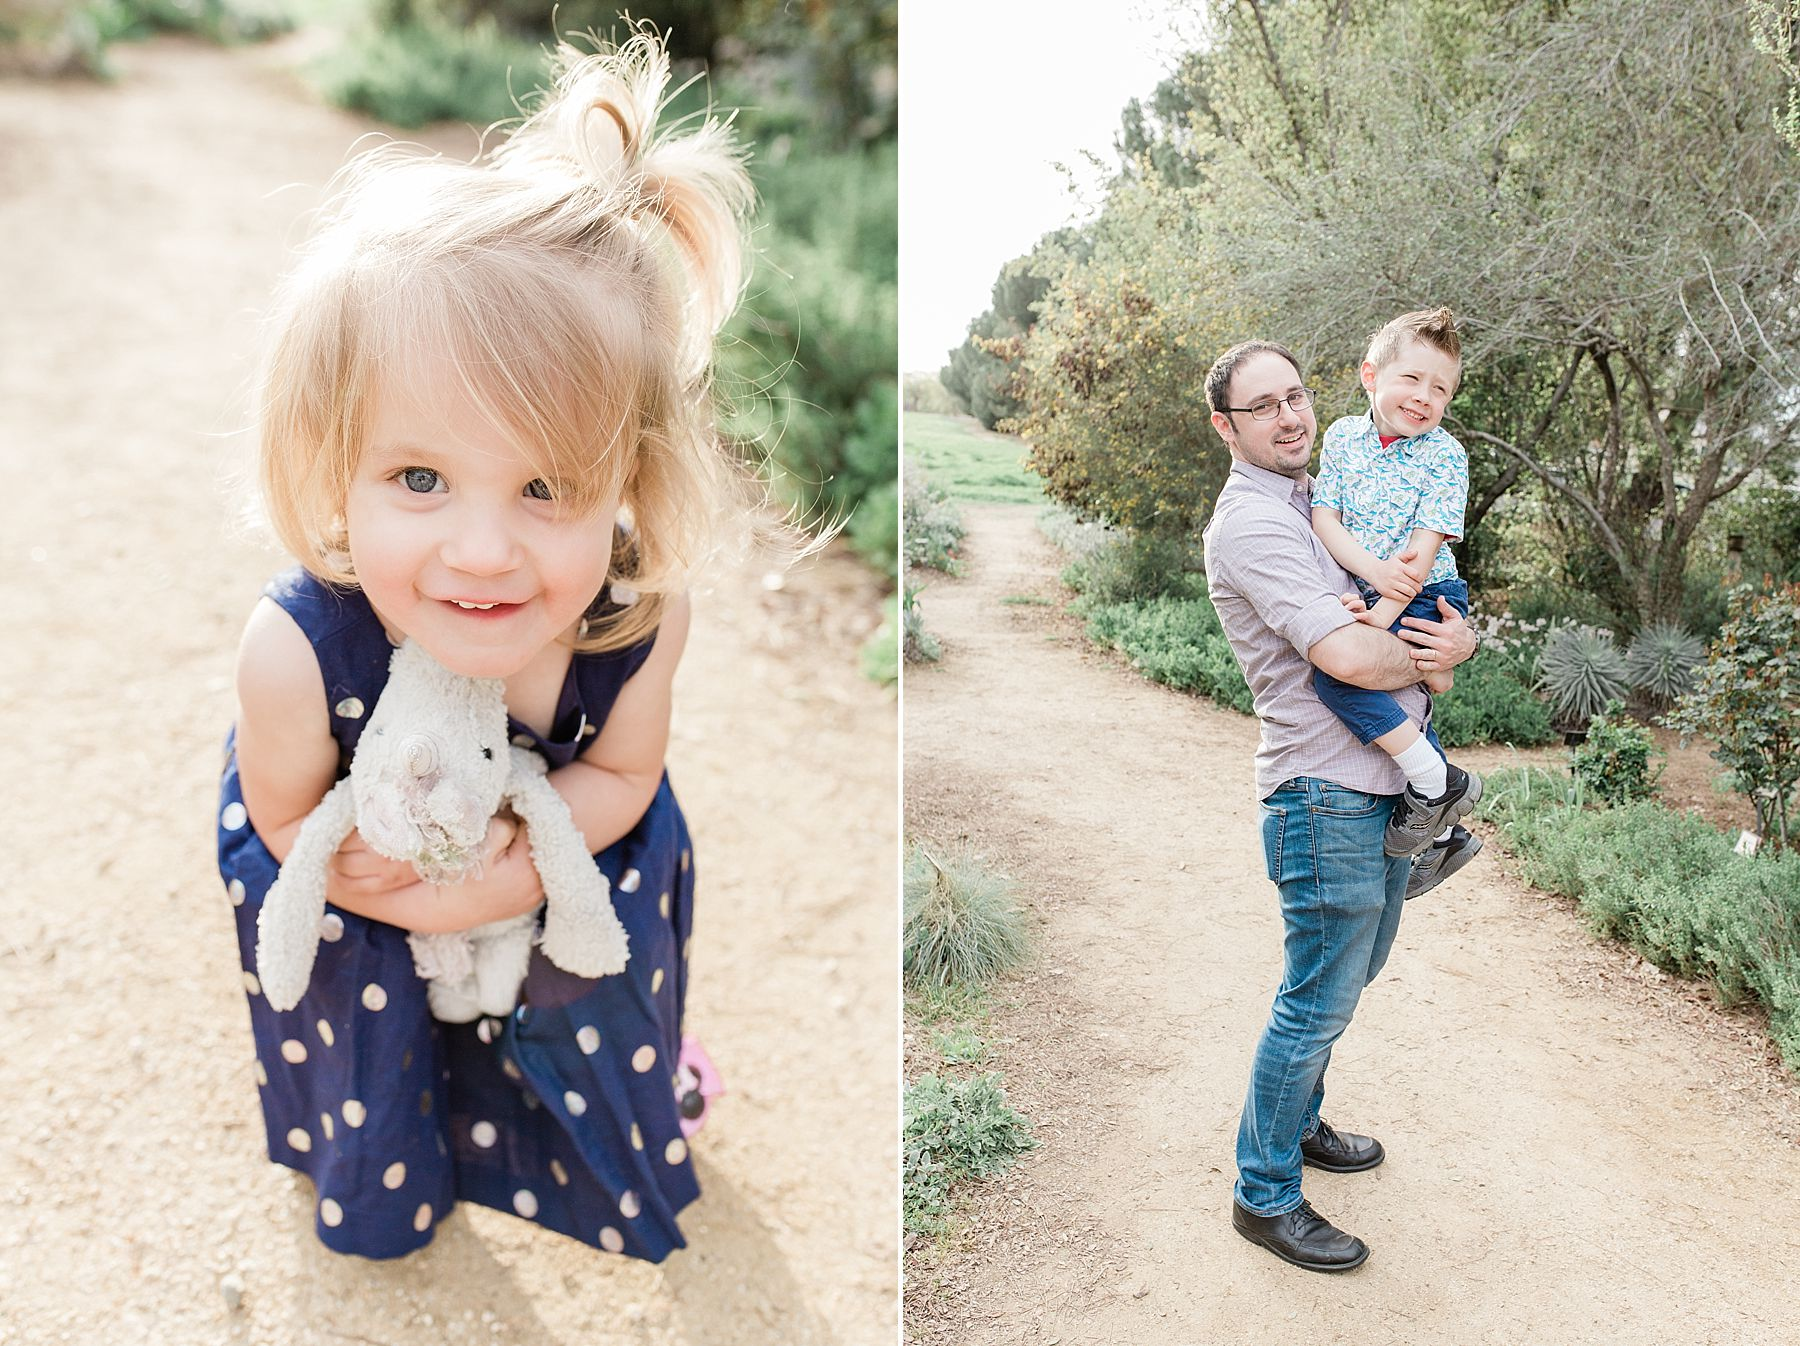 Davis Family Portraits at UC Davis Arboretum - Padovani Family - Ashley Baumgartner - Davis Family Photographer_0012.jpg